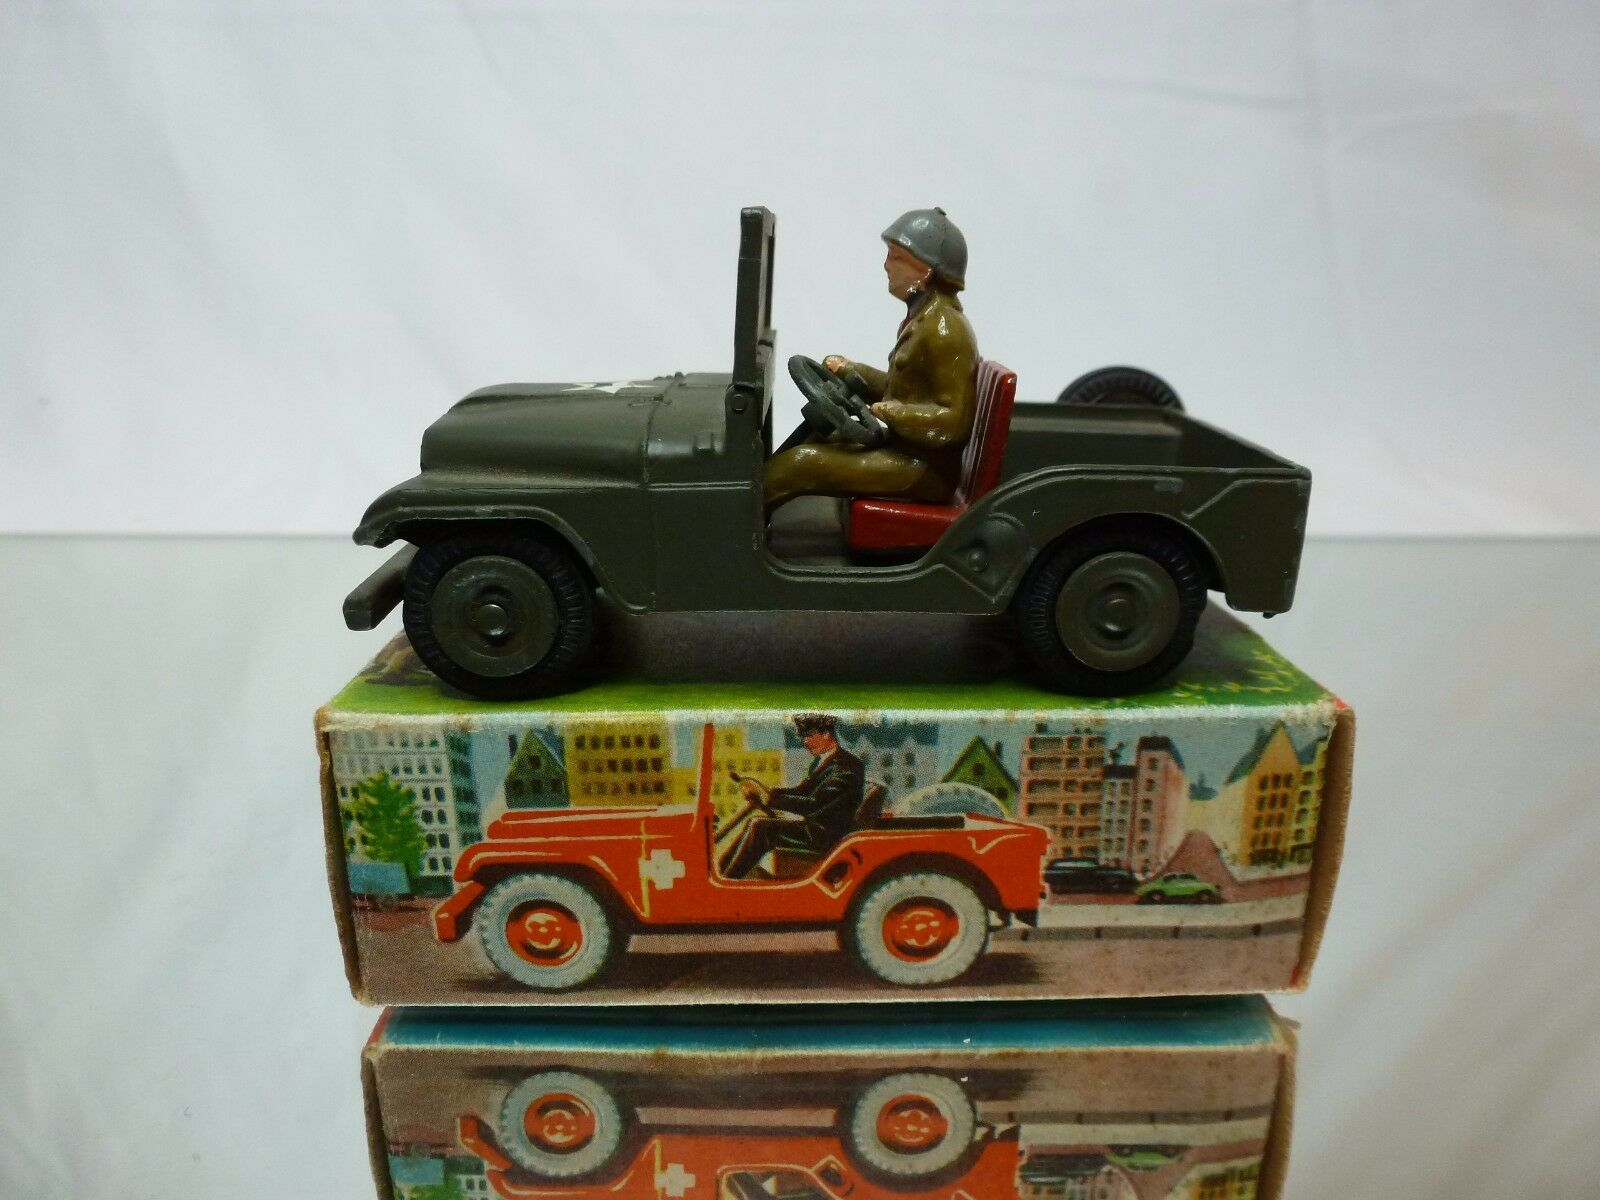 TEKNO DENMARK 814 WILLYS MILITARY JEEP - ARMY vert 1 43 RARE - EXCELLENT IN BOX